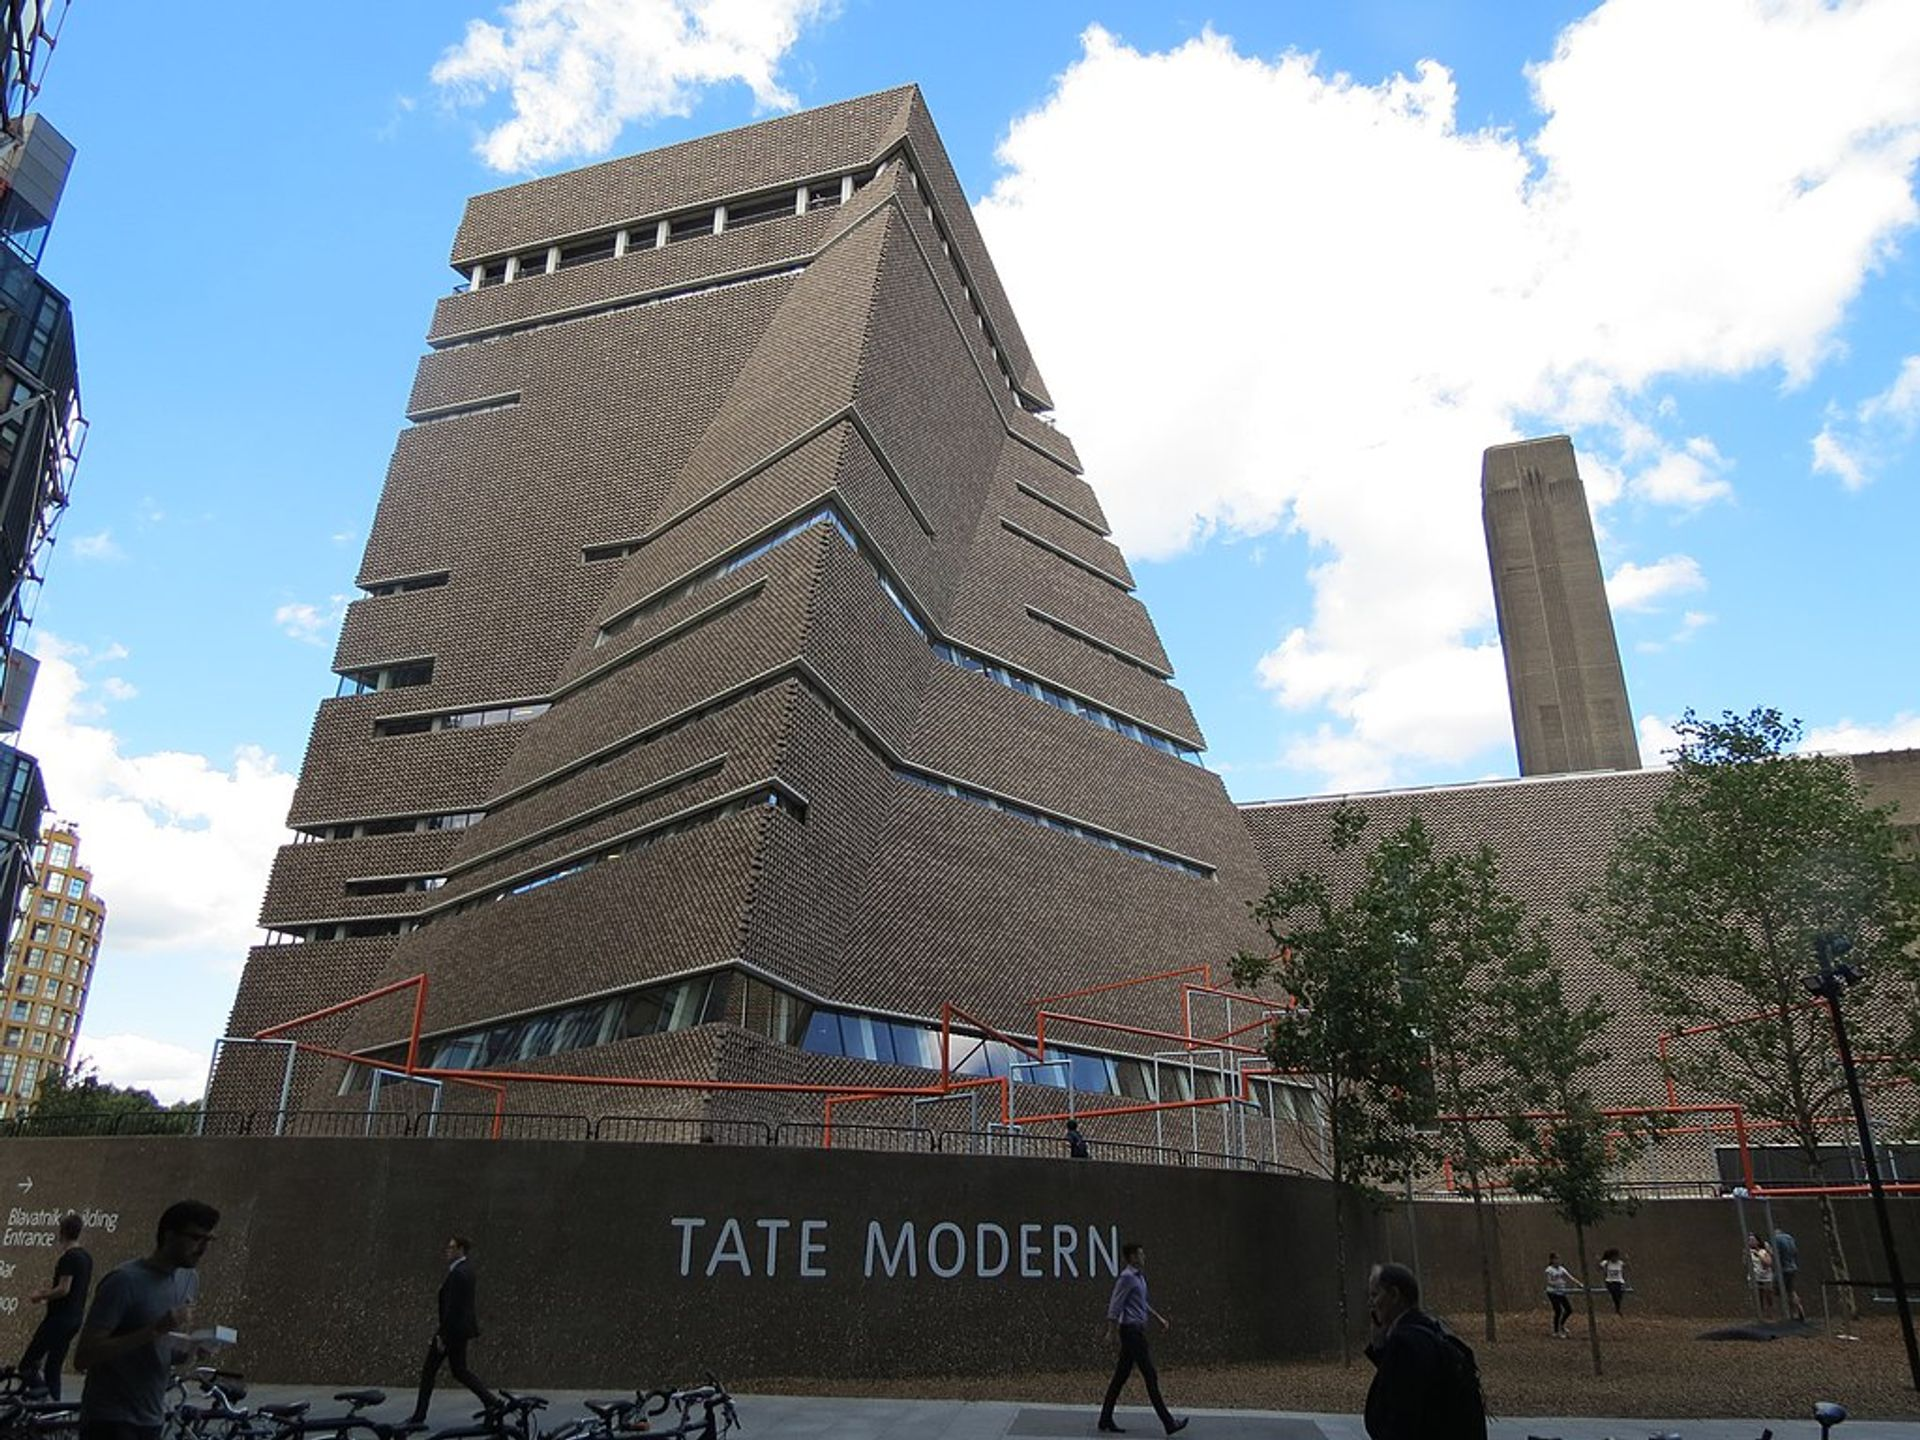 The child was thrown from the viewing platform on the top floor of Tate Modern's Blavatnik building © Wikimedia Commons